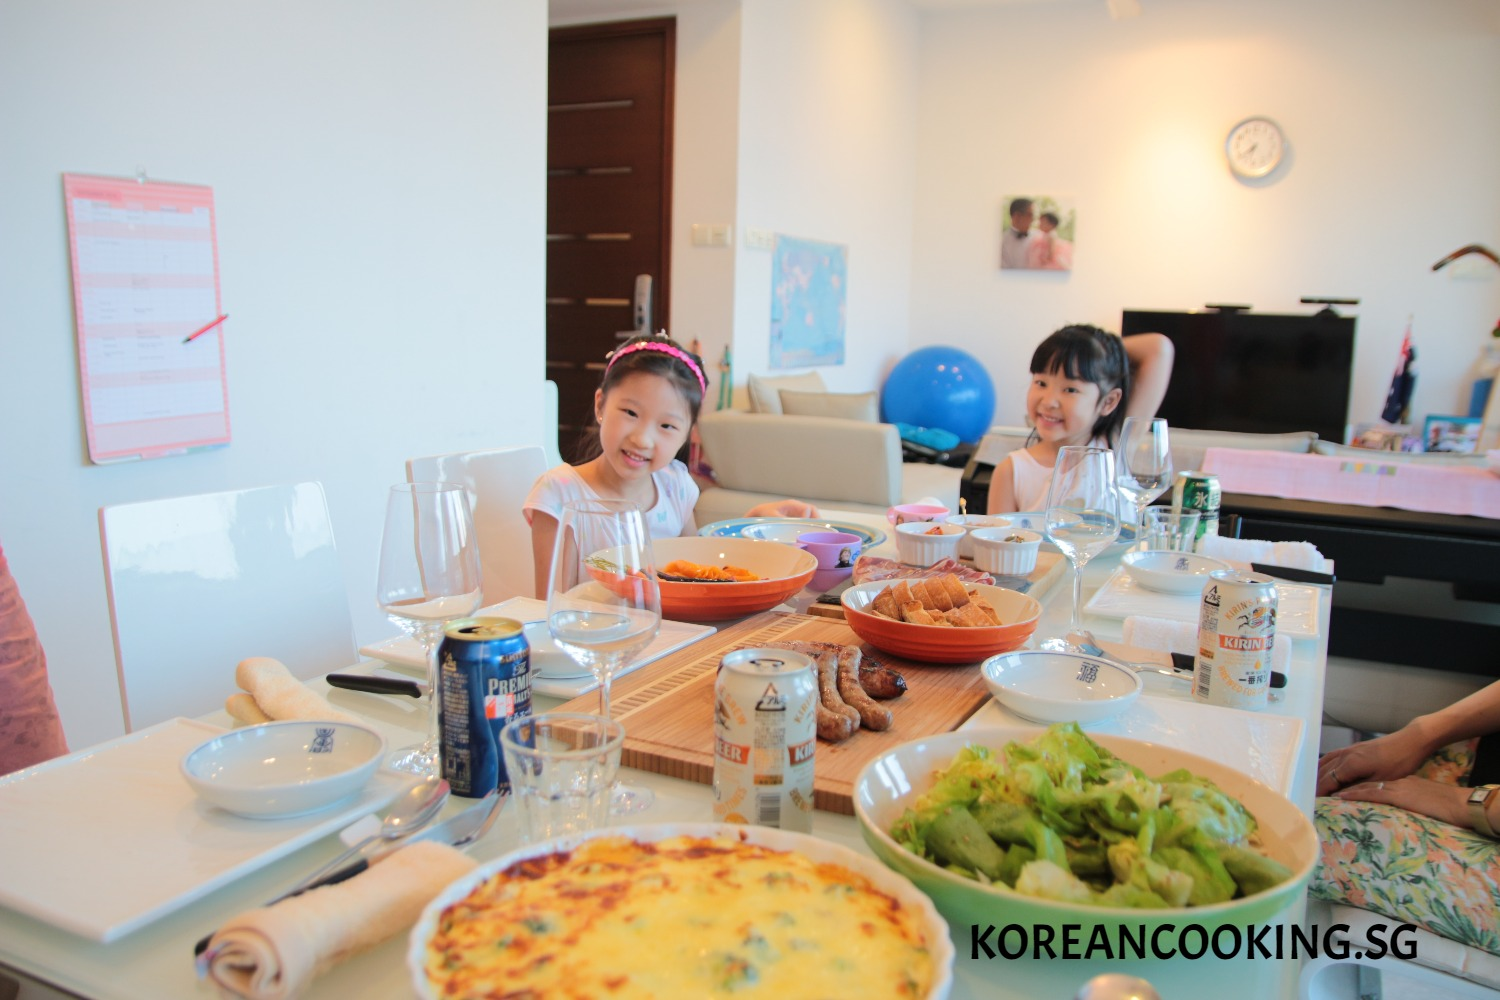 BBQ DINNER WITH FRIENDS